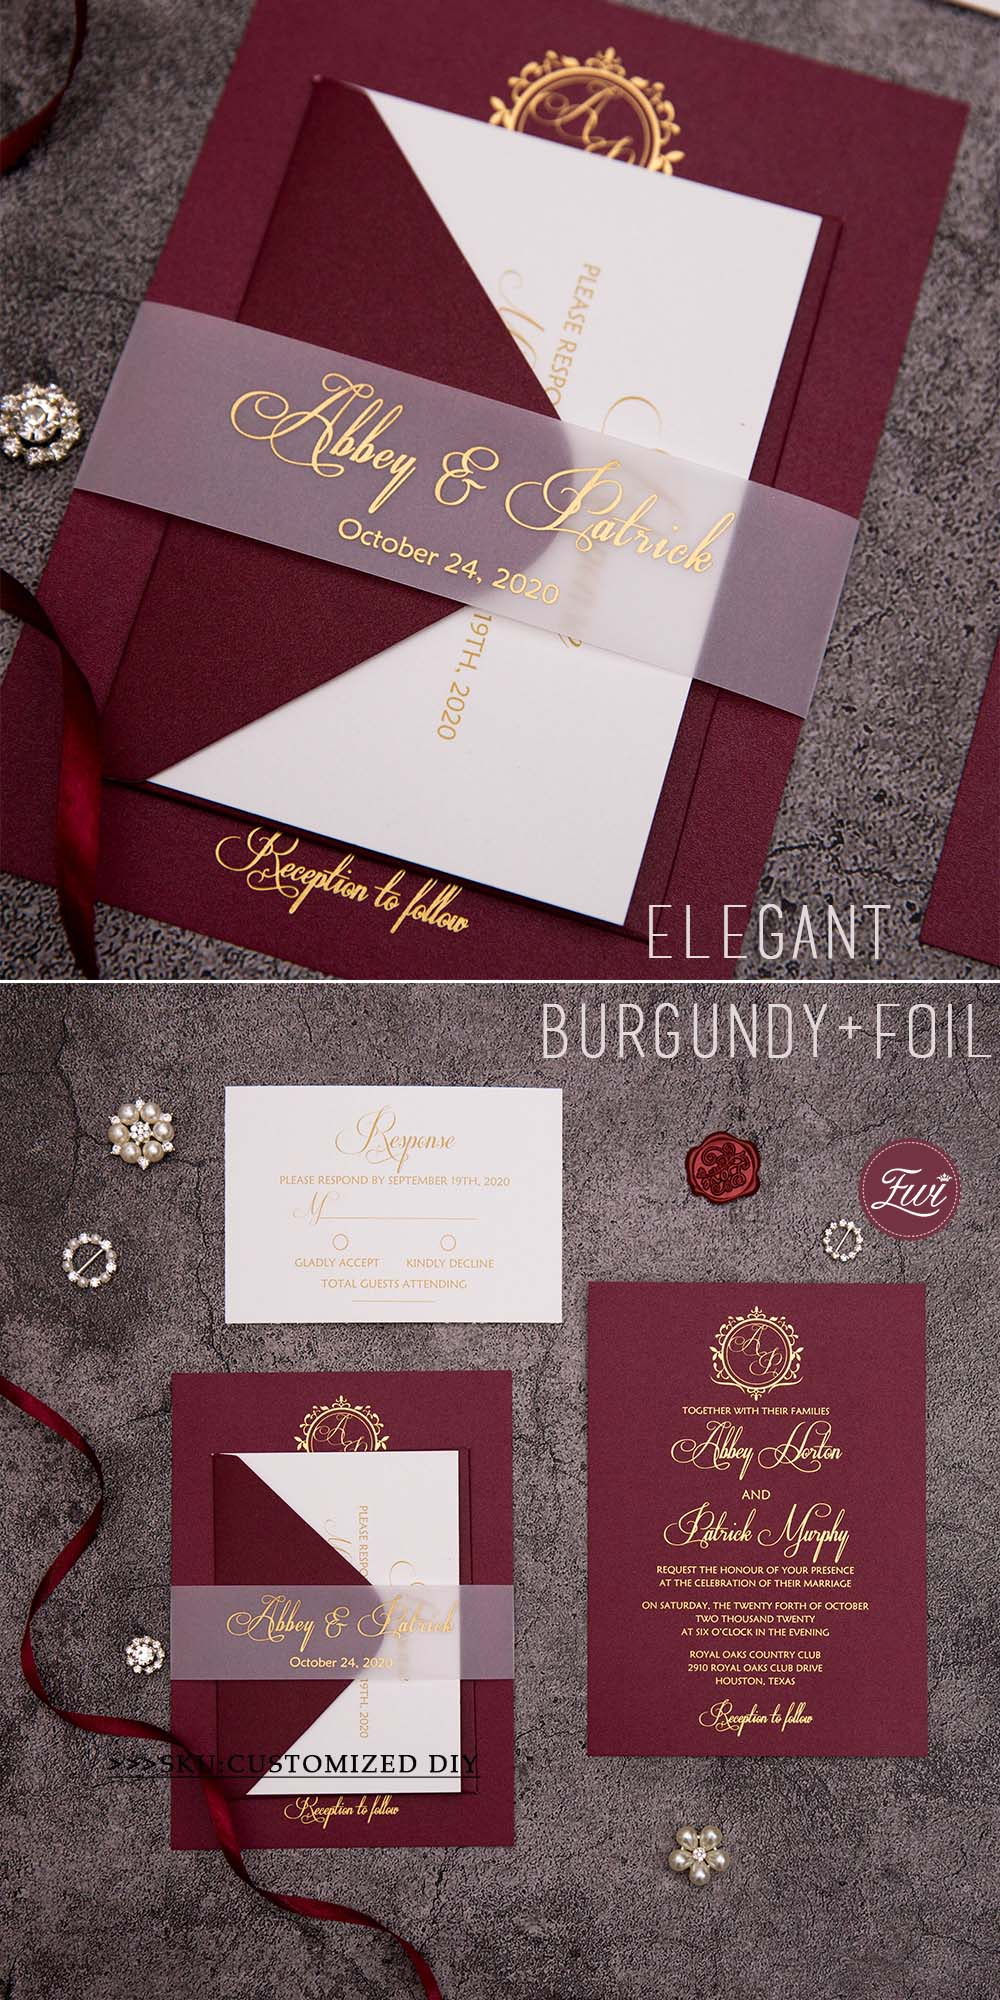 EWI450 Merlot burgundy invitations with foil print and translucent vellum belly band